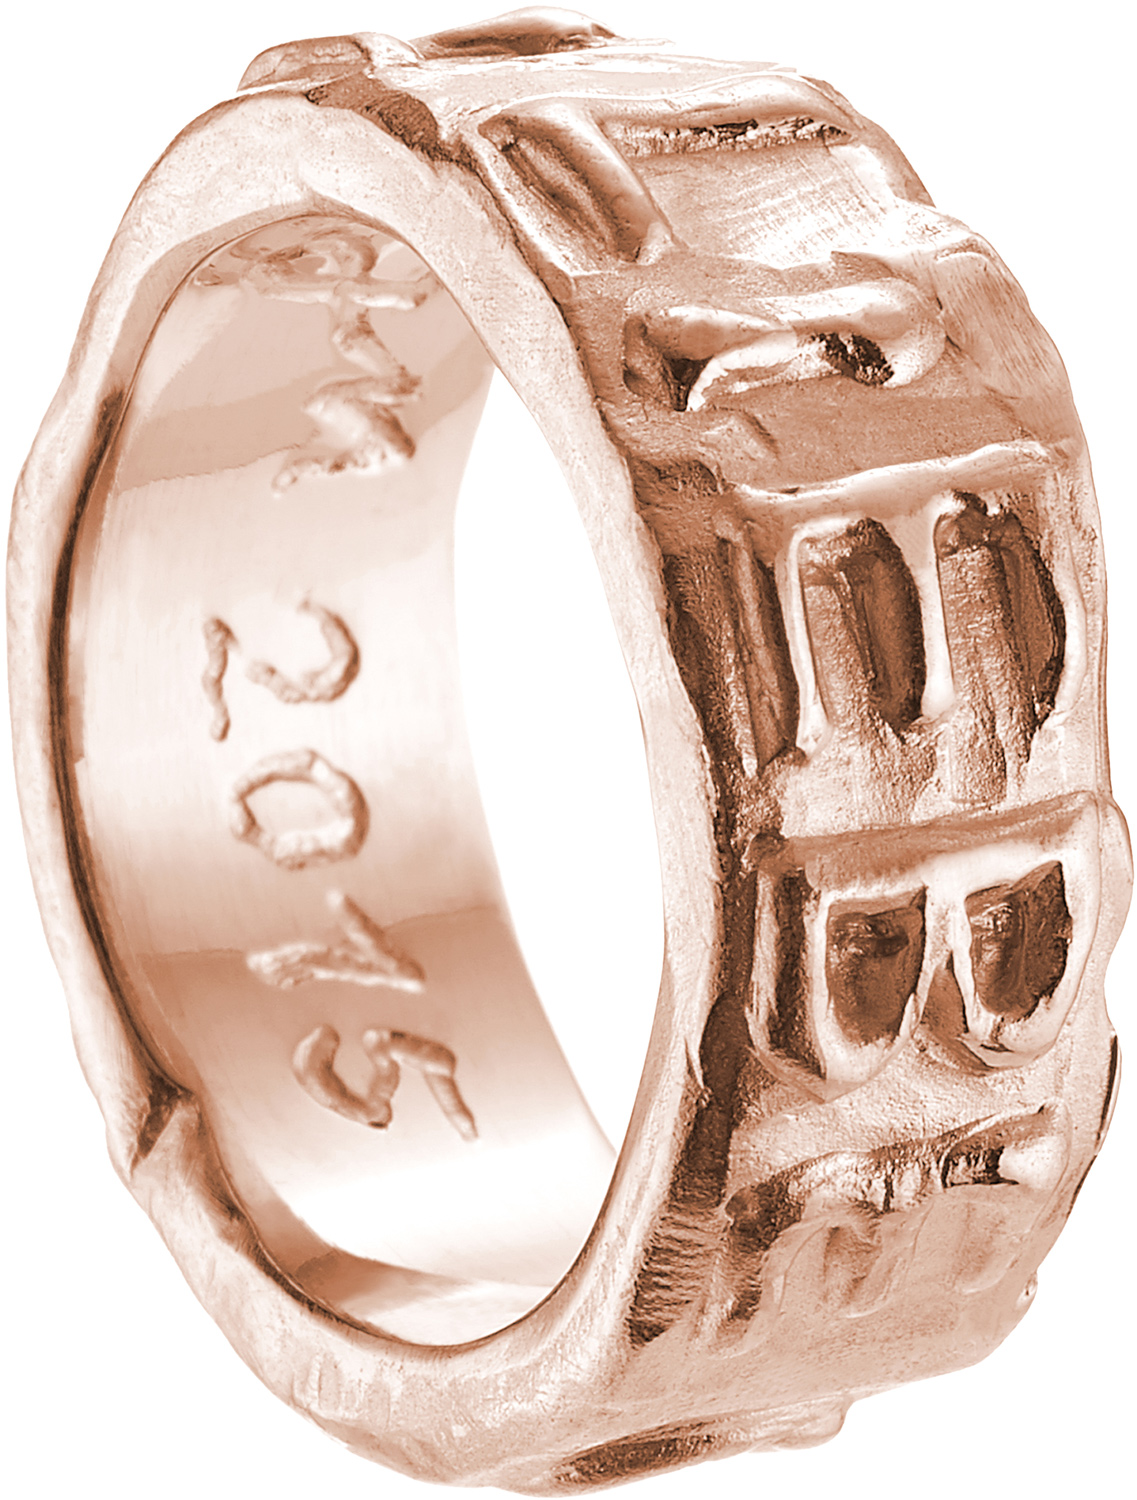 JONATHAN MEESE for CADA<br><br>LIEBE GOLD ERZ Ring